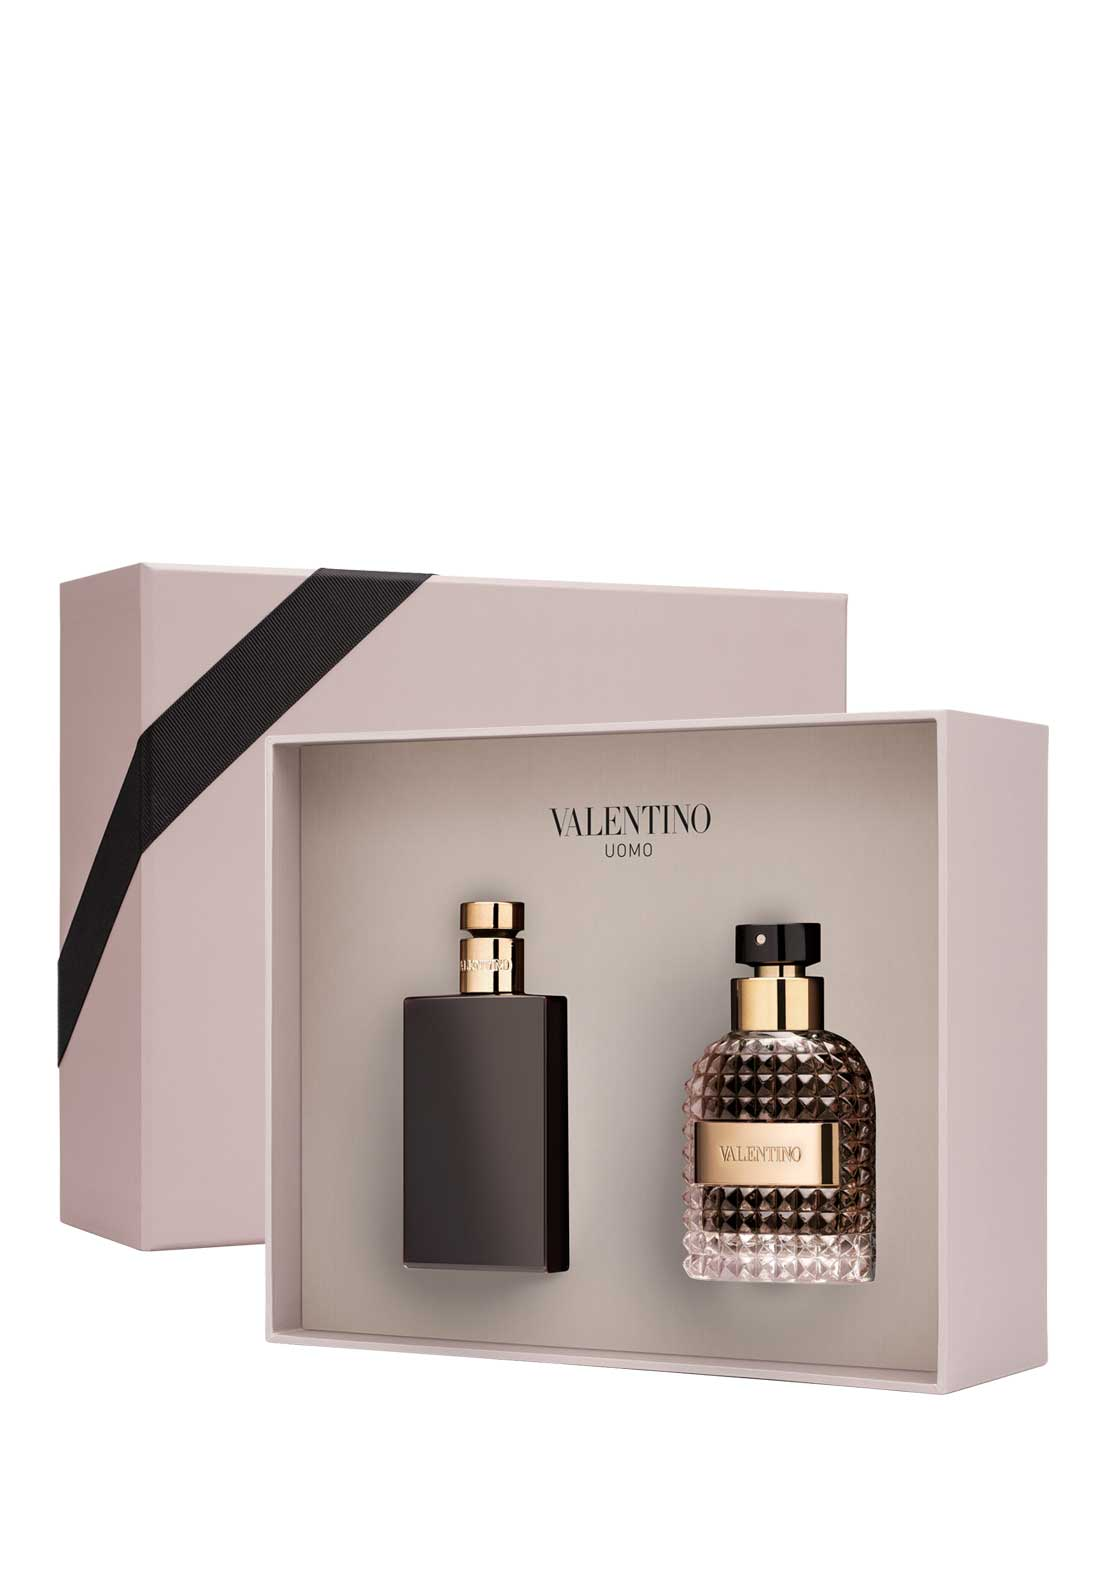 Valentino Uomo Gift Set for him, 100ml